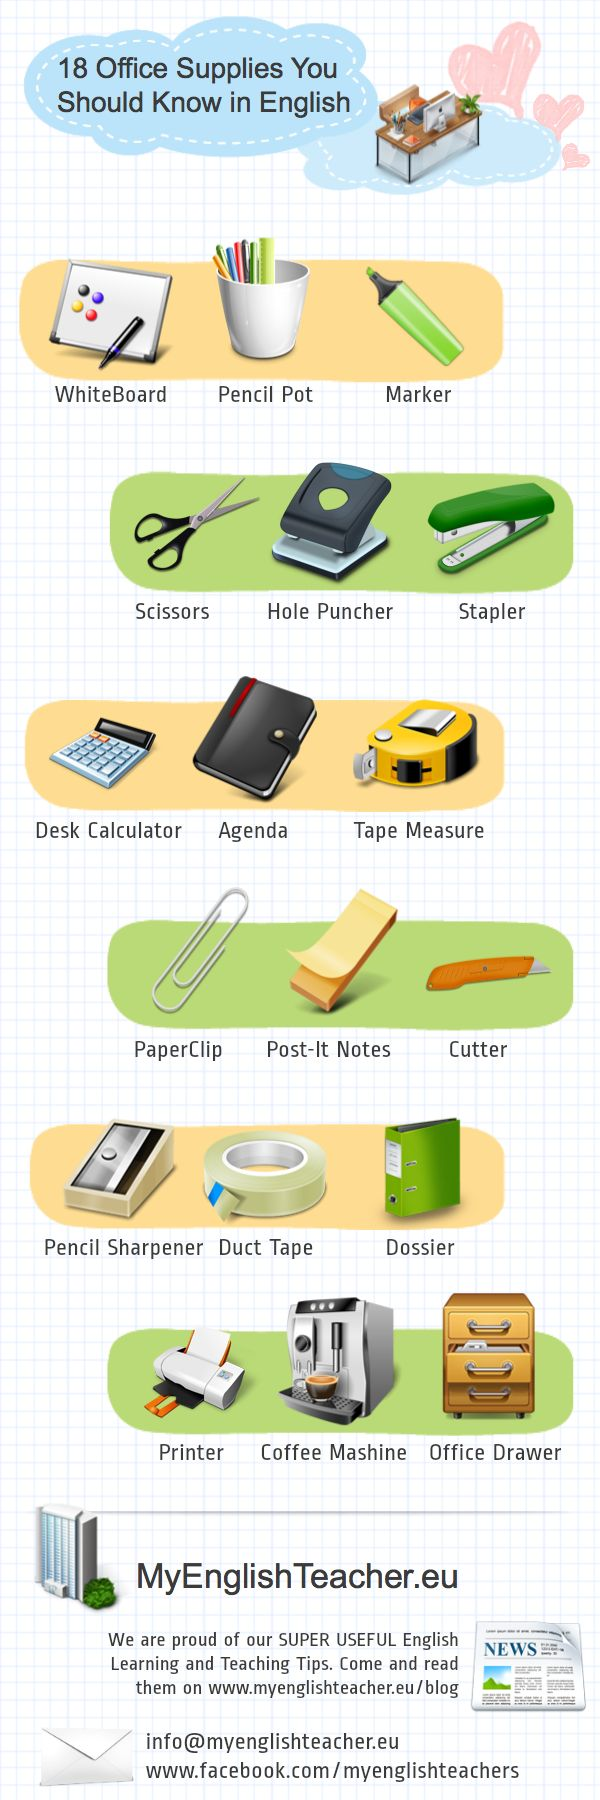 18 Office Supplies You Should Know in English. www.blabmate.com - If you are learning English, find a teacher who suits you - for tuition or a conversation partner - to practise your conversation